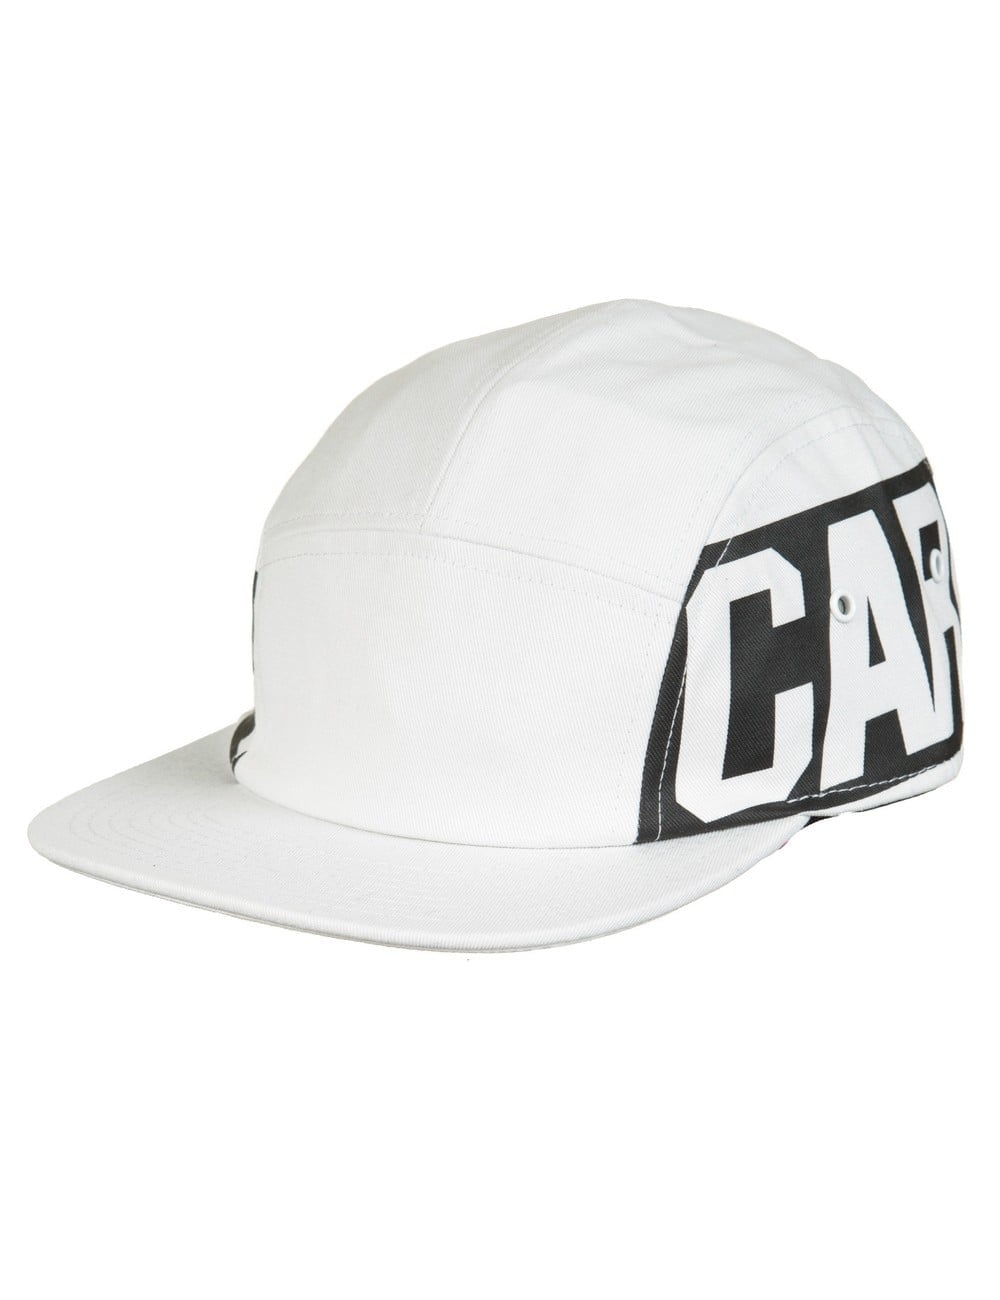 4ce9428bc042f Carhartt WIP Script Starter 5 Panel Cap - White Black - Hat Shop ...